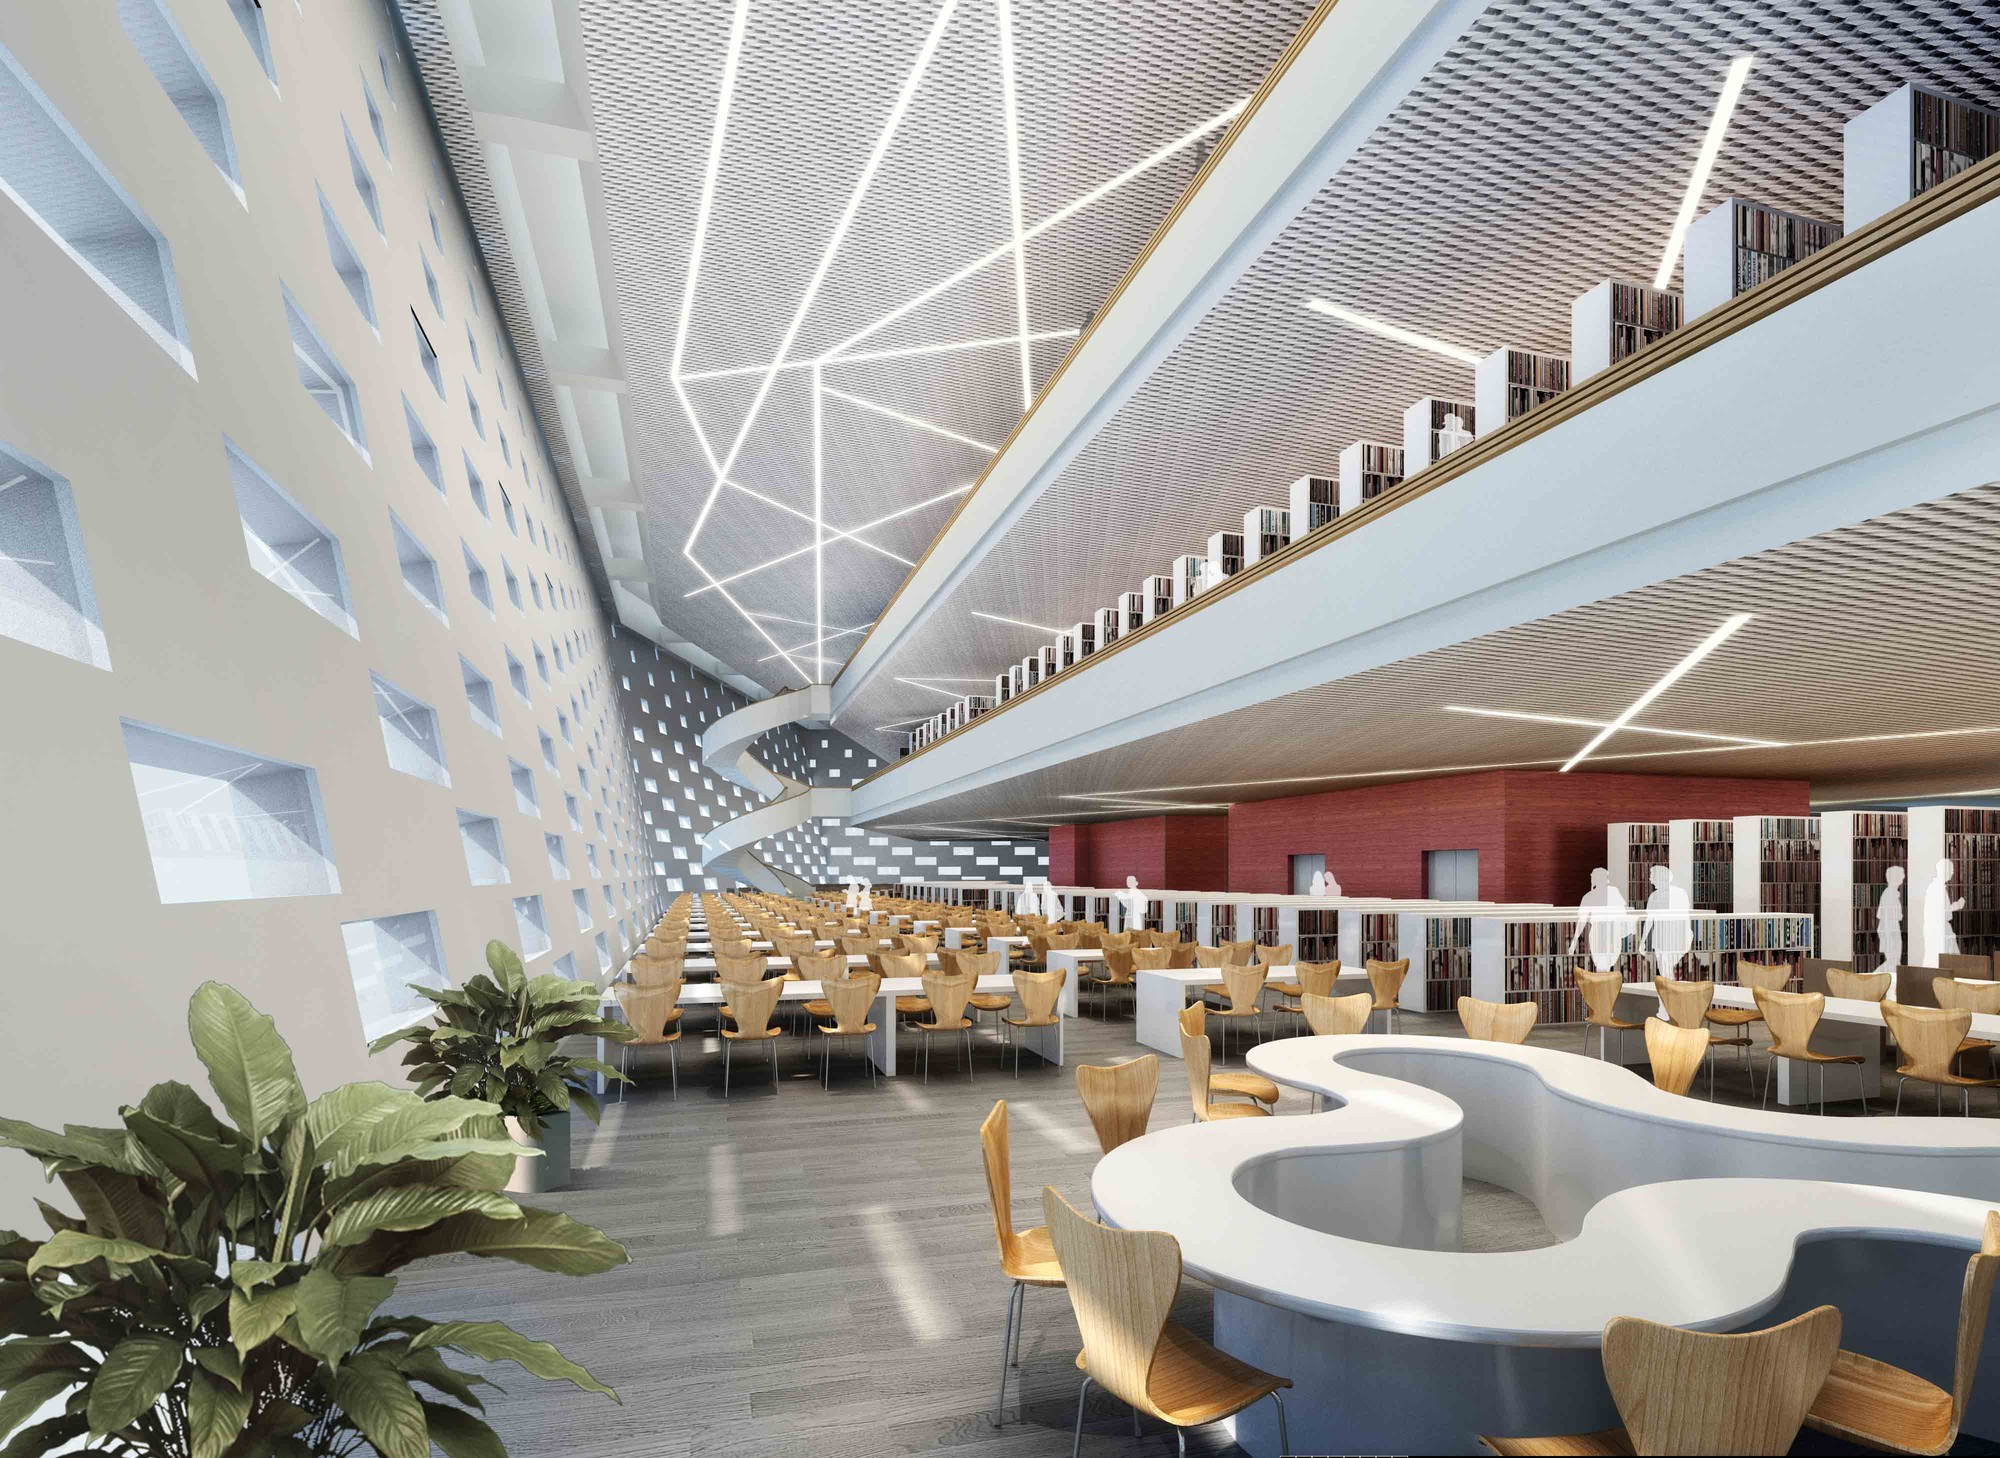 Research University Library Design